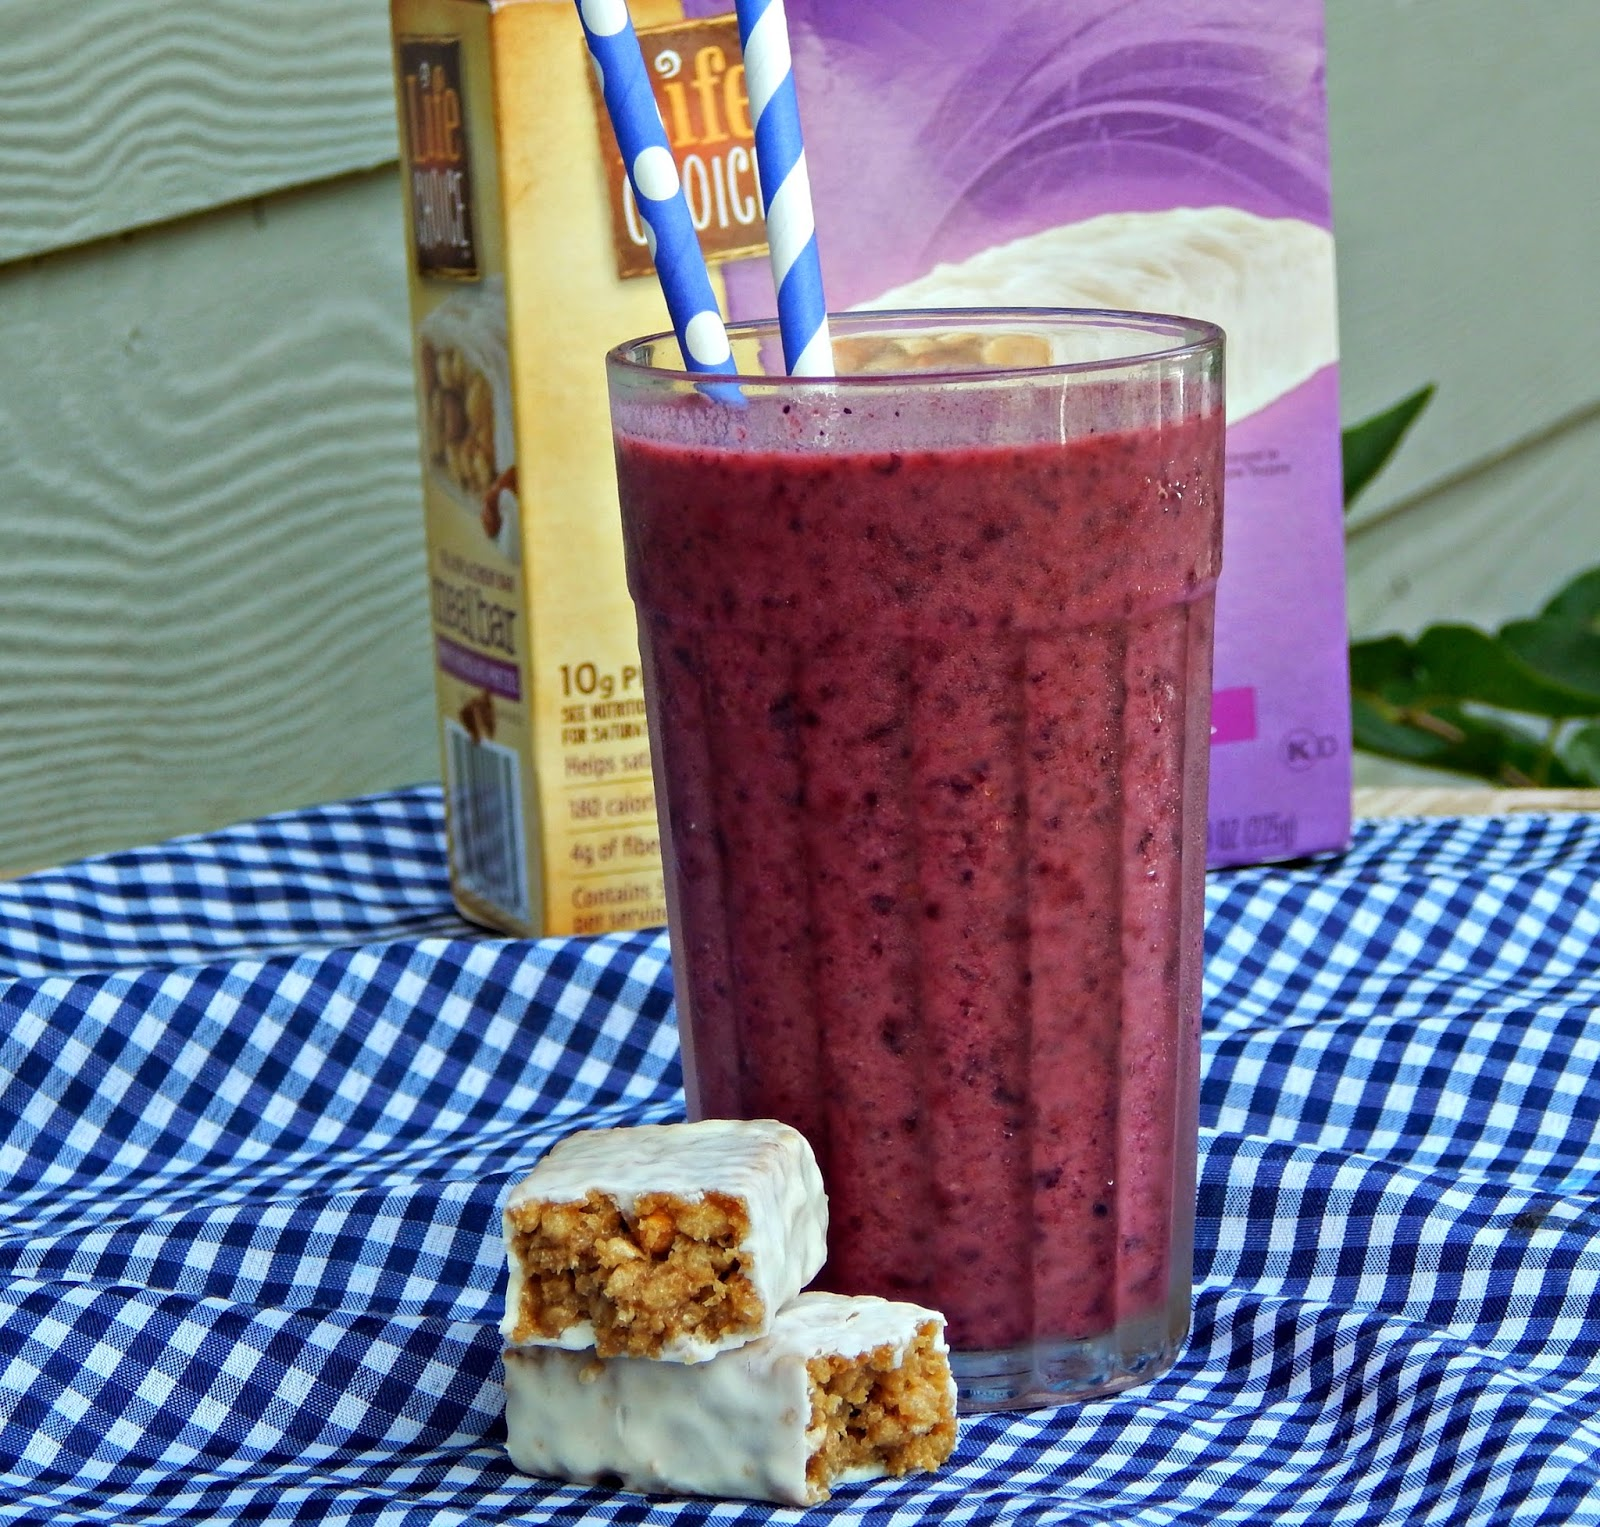 Black and Blueberry Smoothie #barnutrition #collectivebias #shop